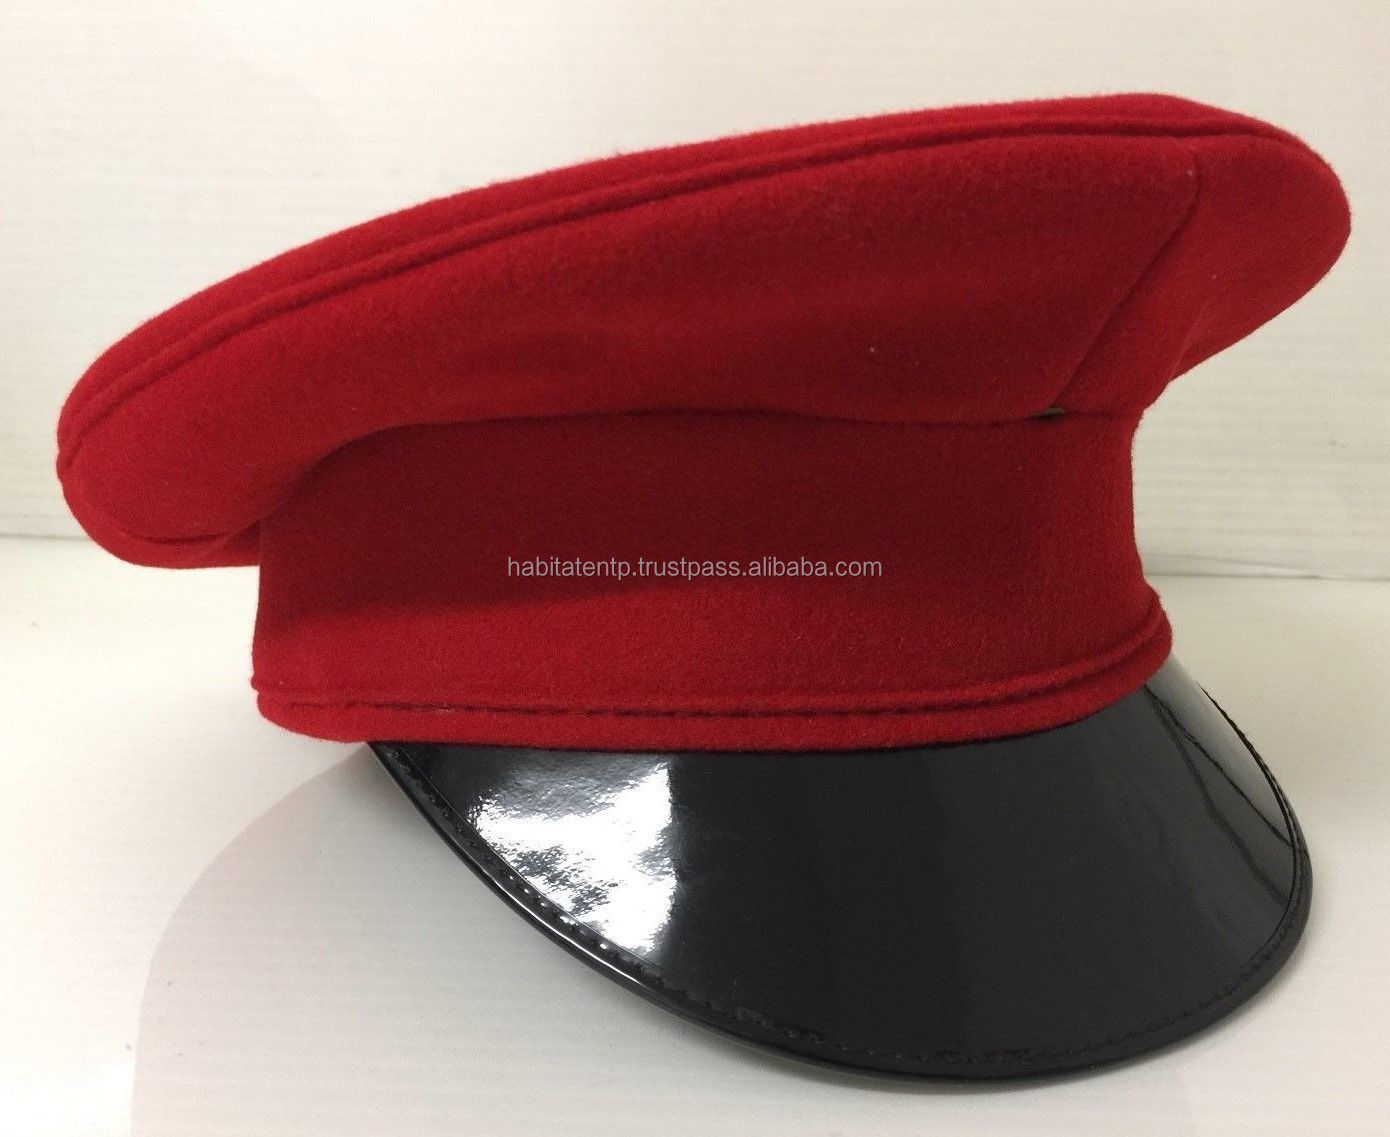 Queens Royal Hussars Dress Peaked Cap British Army Issue - Buy Red ... 8edcdb07cb1